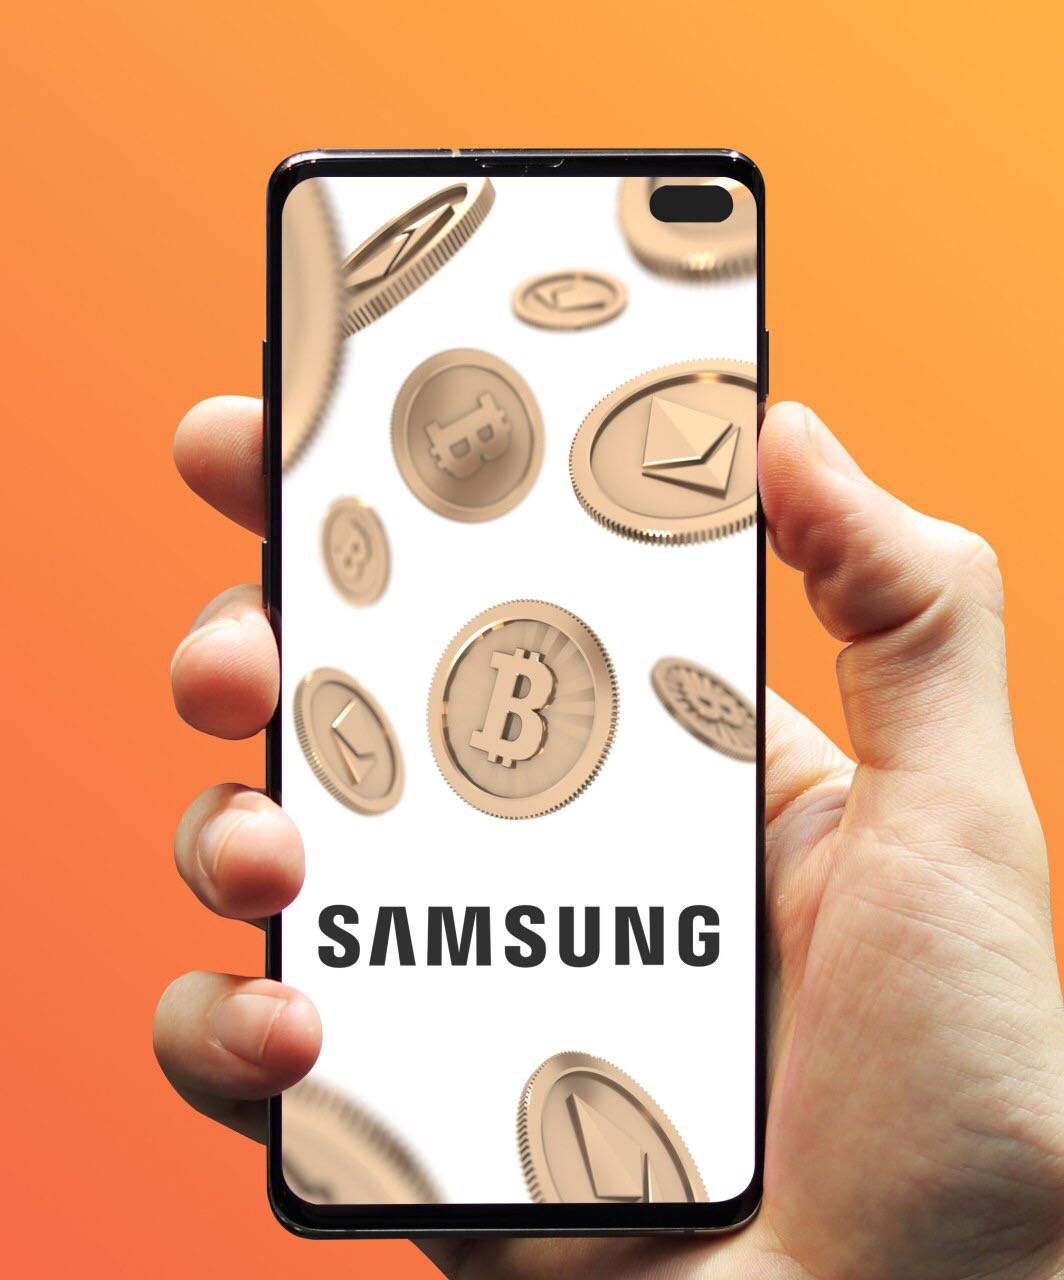 Samsung Entering the Cryptocurrency Market: All You Need to Know